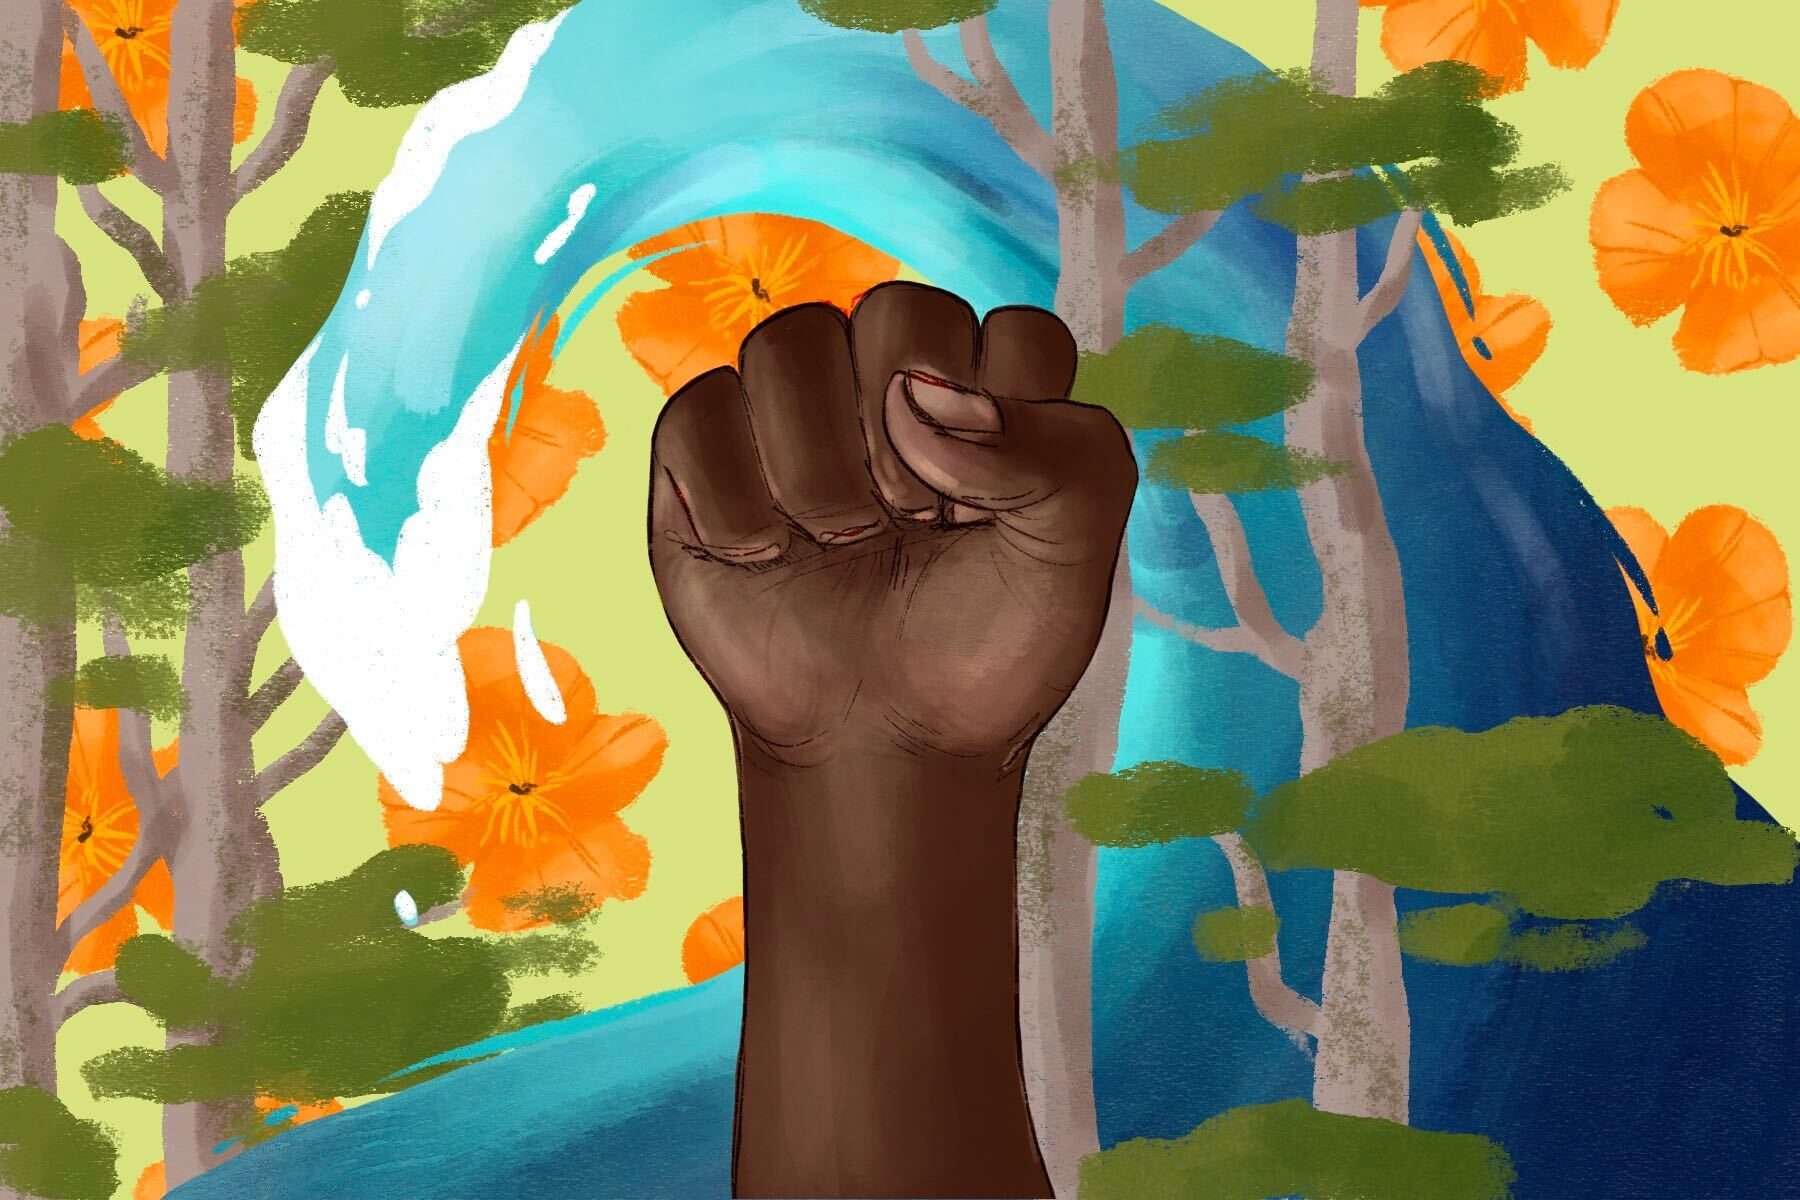 In an article about anti-racism and environmentalism, a raised fist